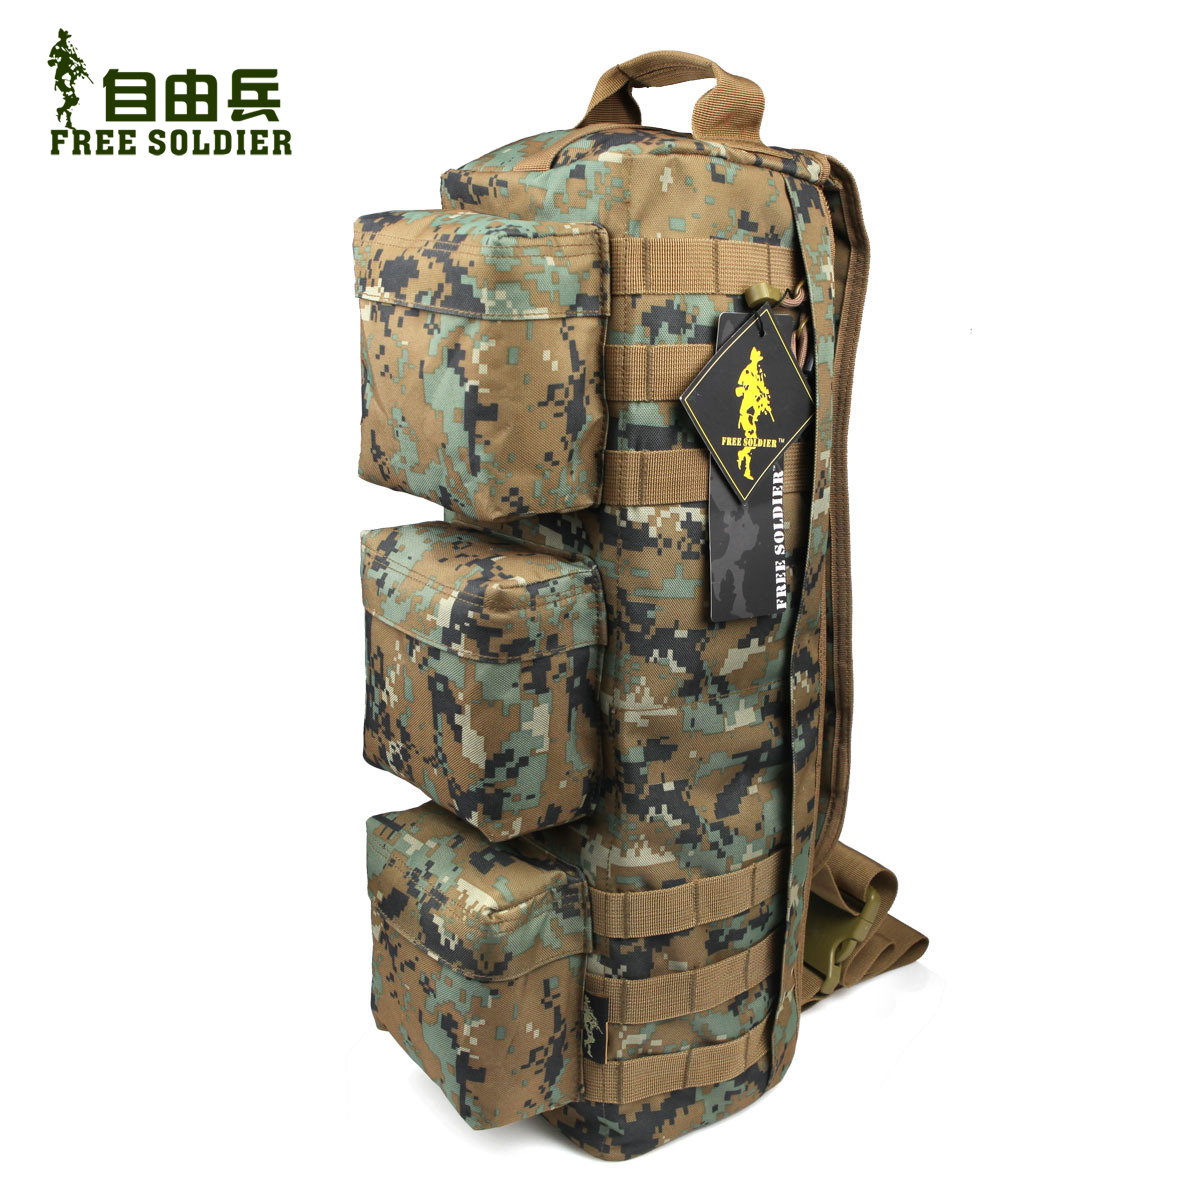 Freedom soldiers transformers assault versatile camouflage bag shoulder bag tactical military fans outdoor tactical shoulder bag